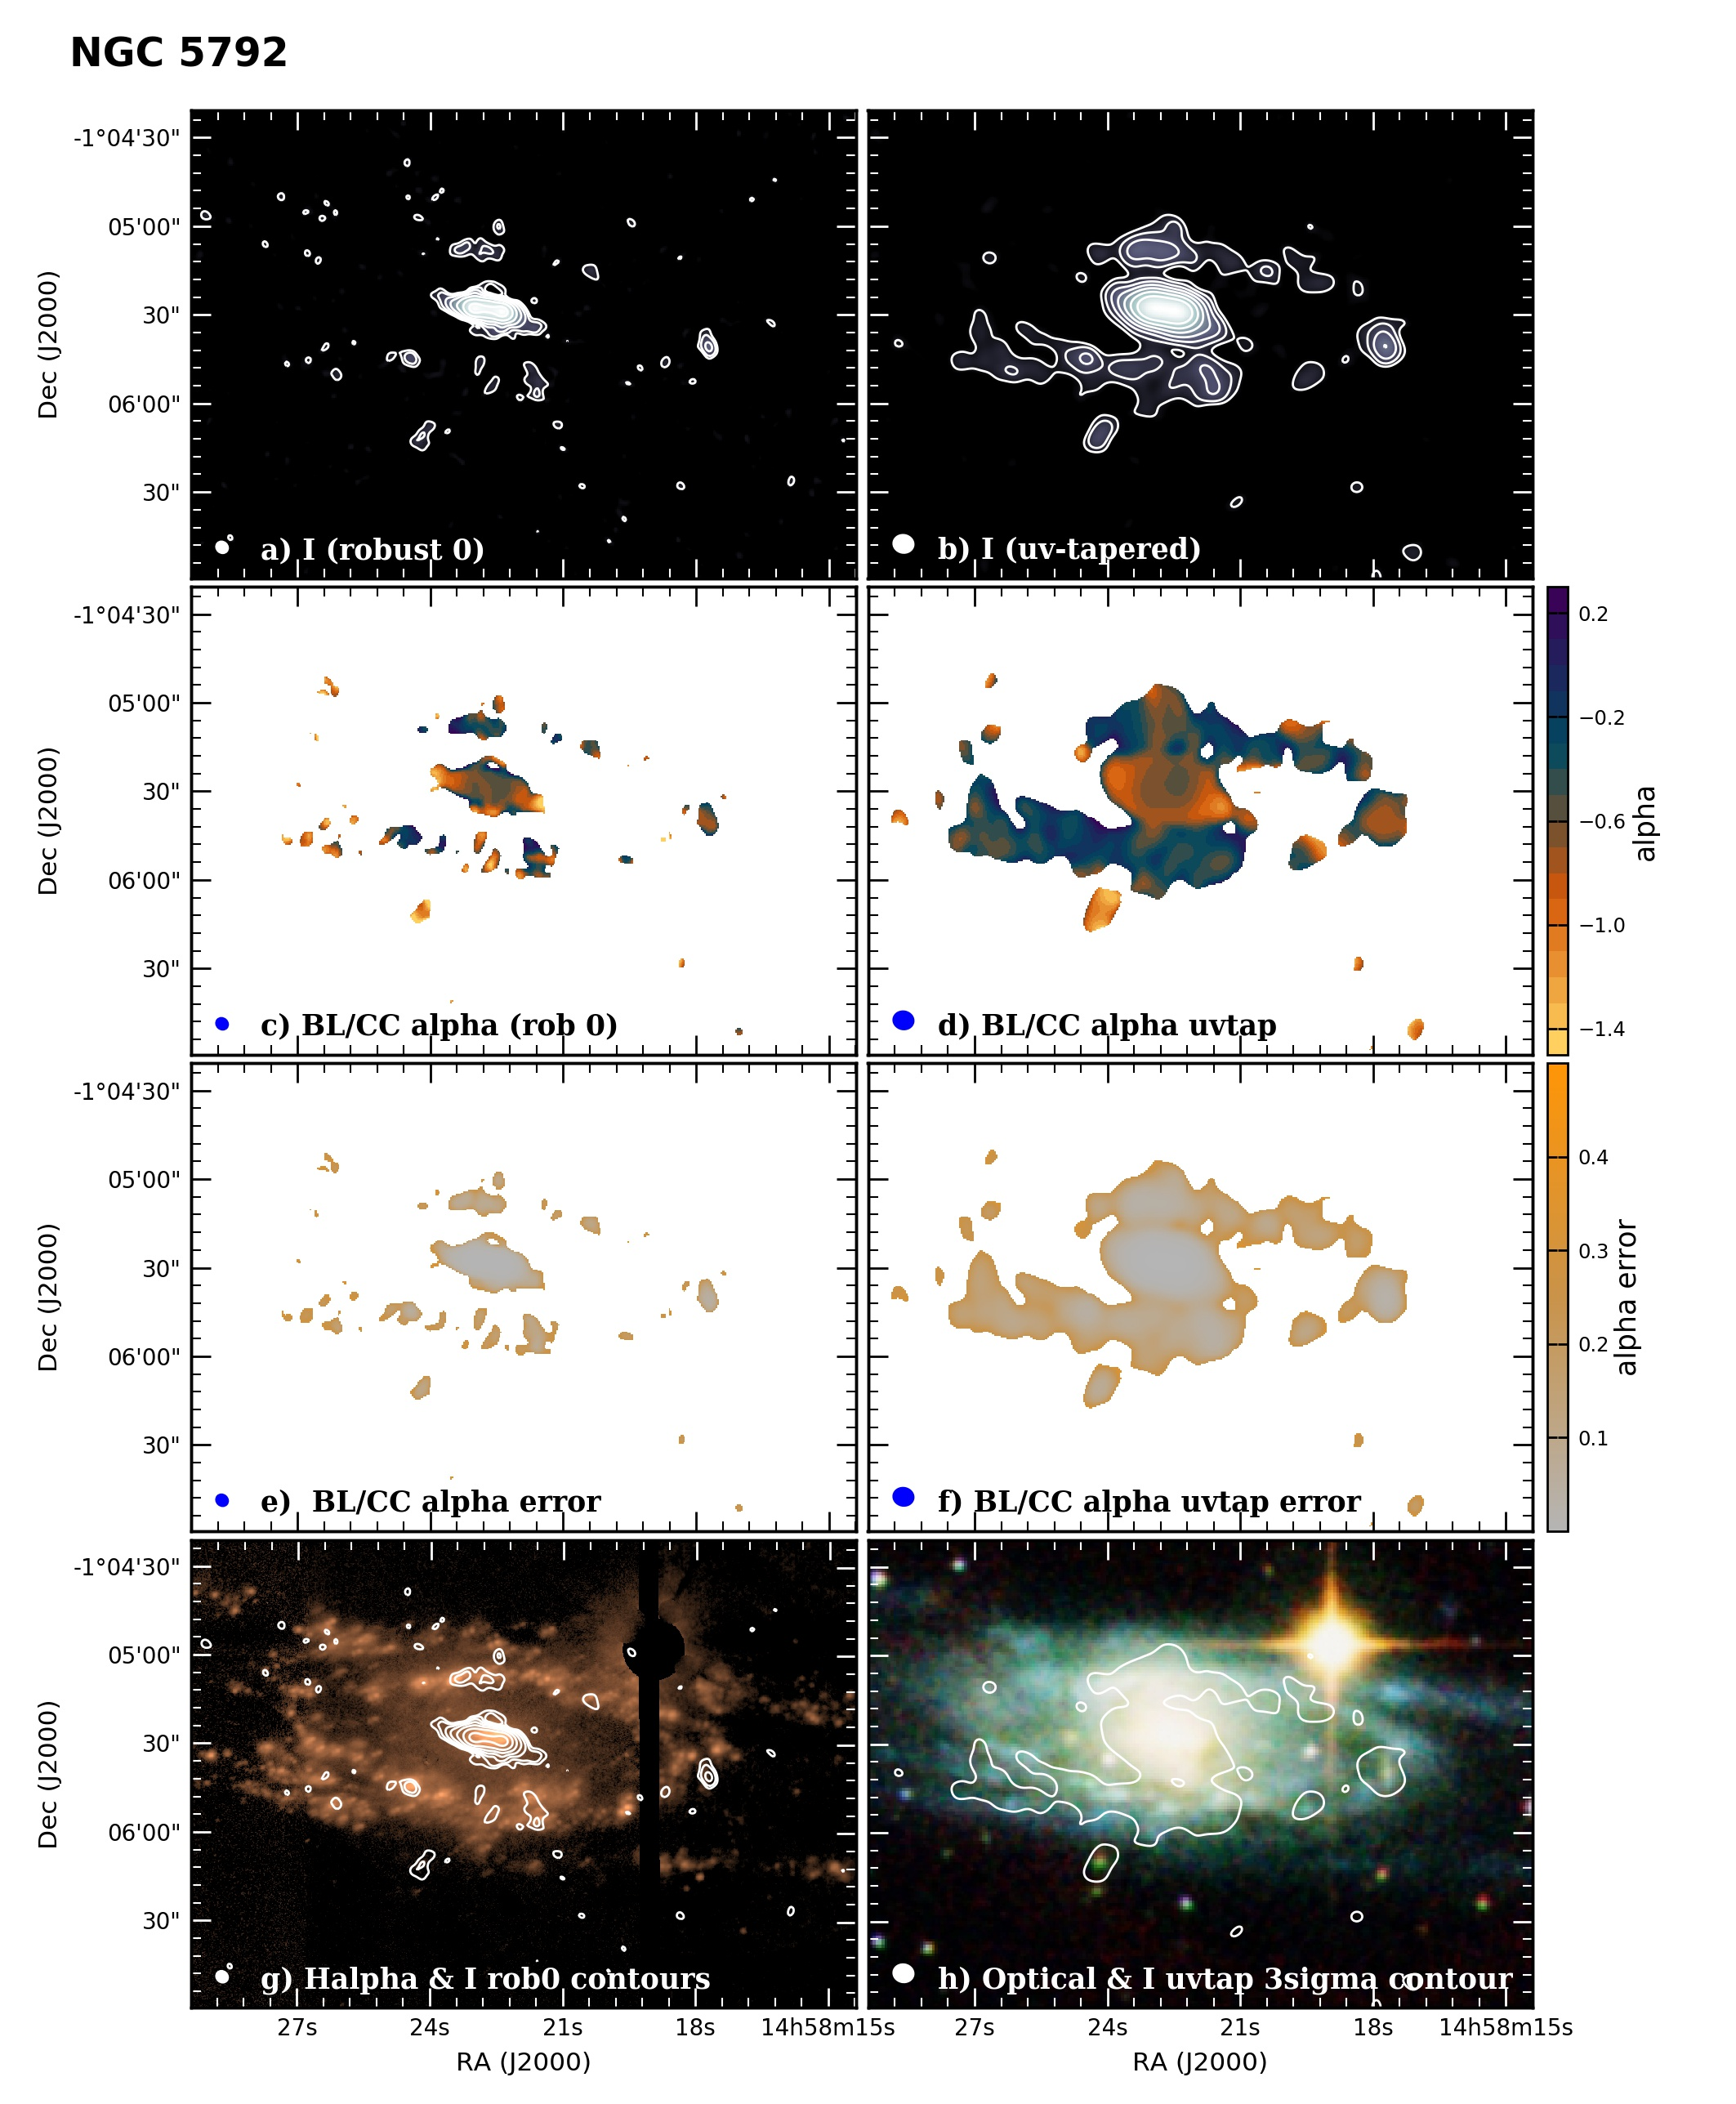 Panel image of NGC5792 from B configuration data release III (Irwin et al. 2019)